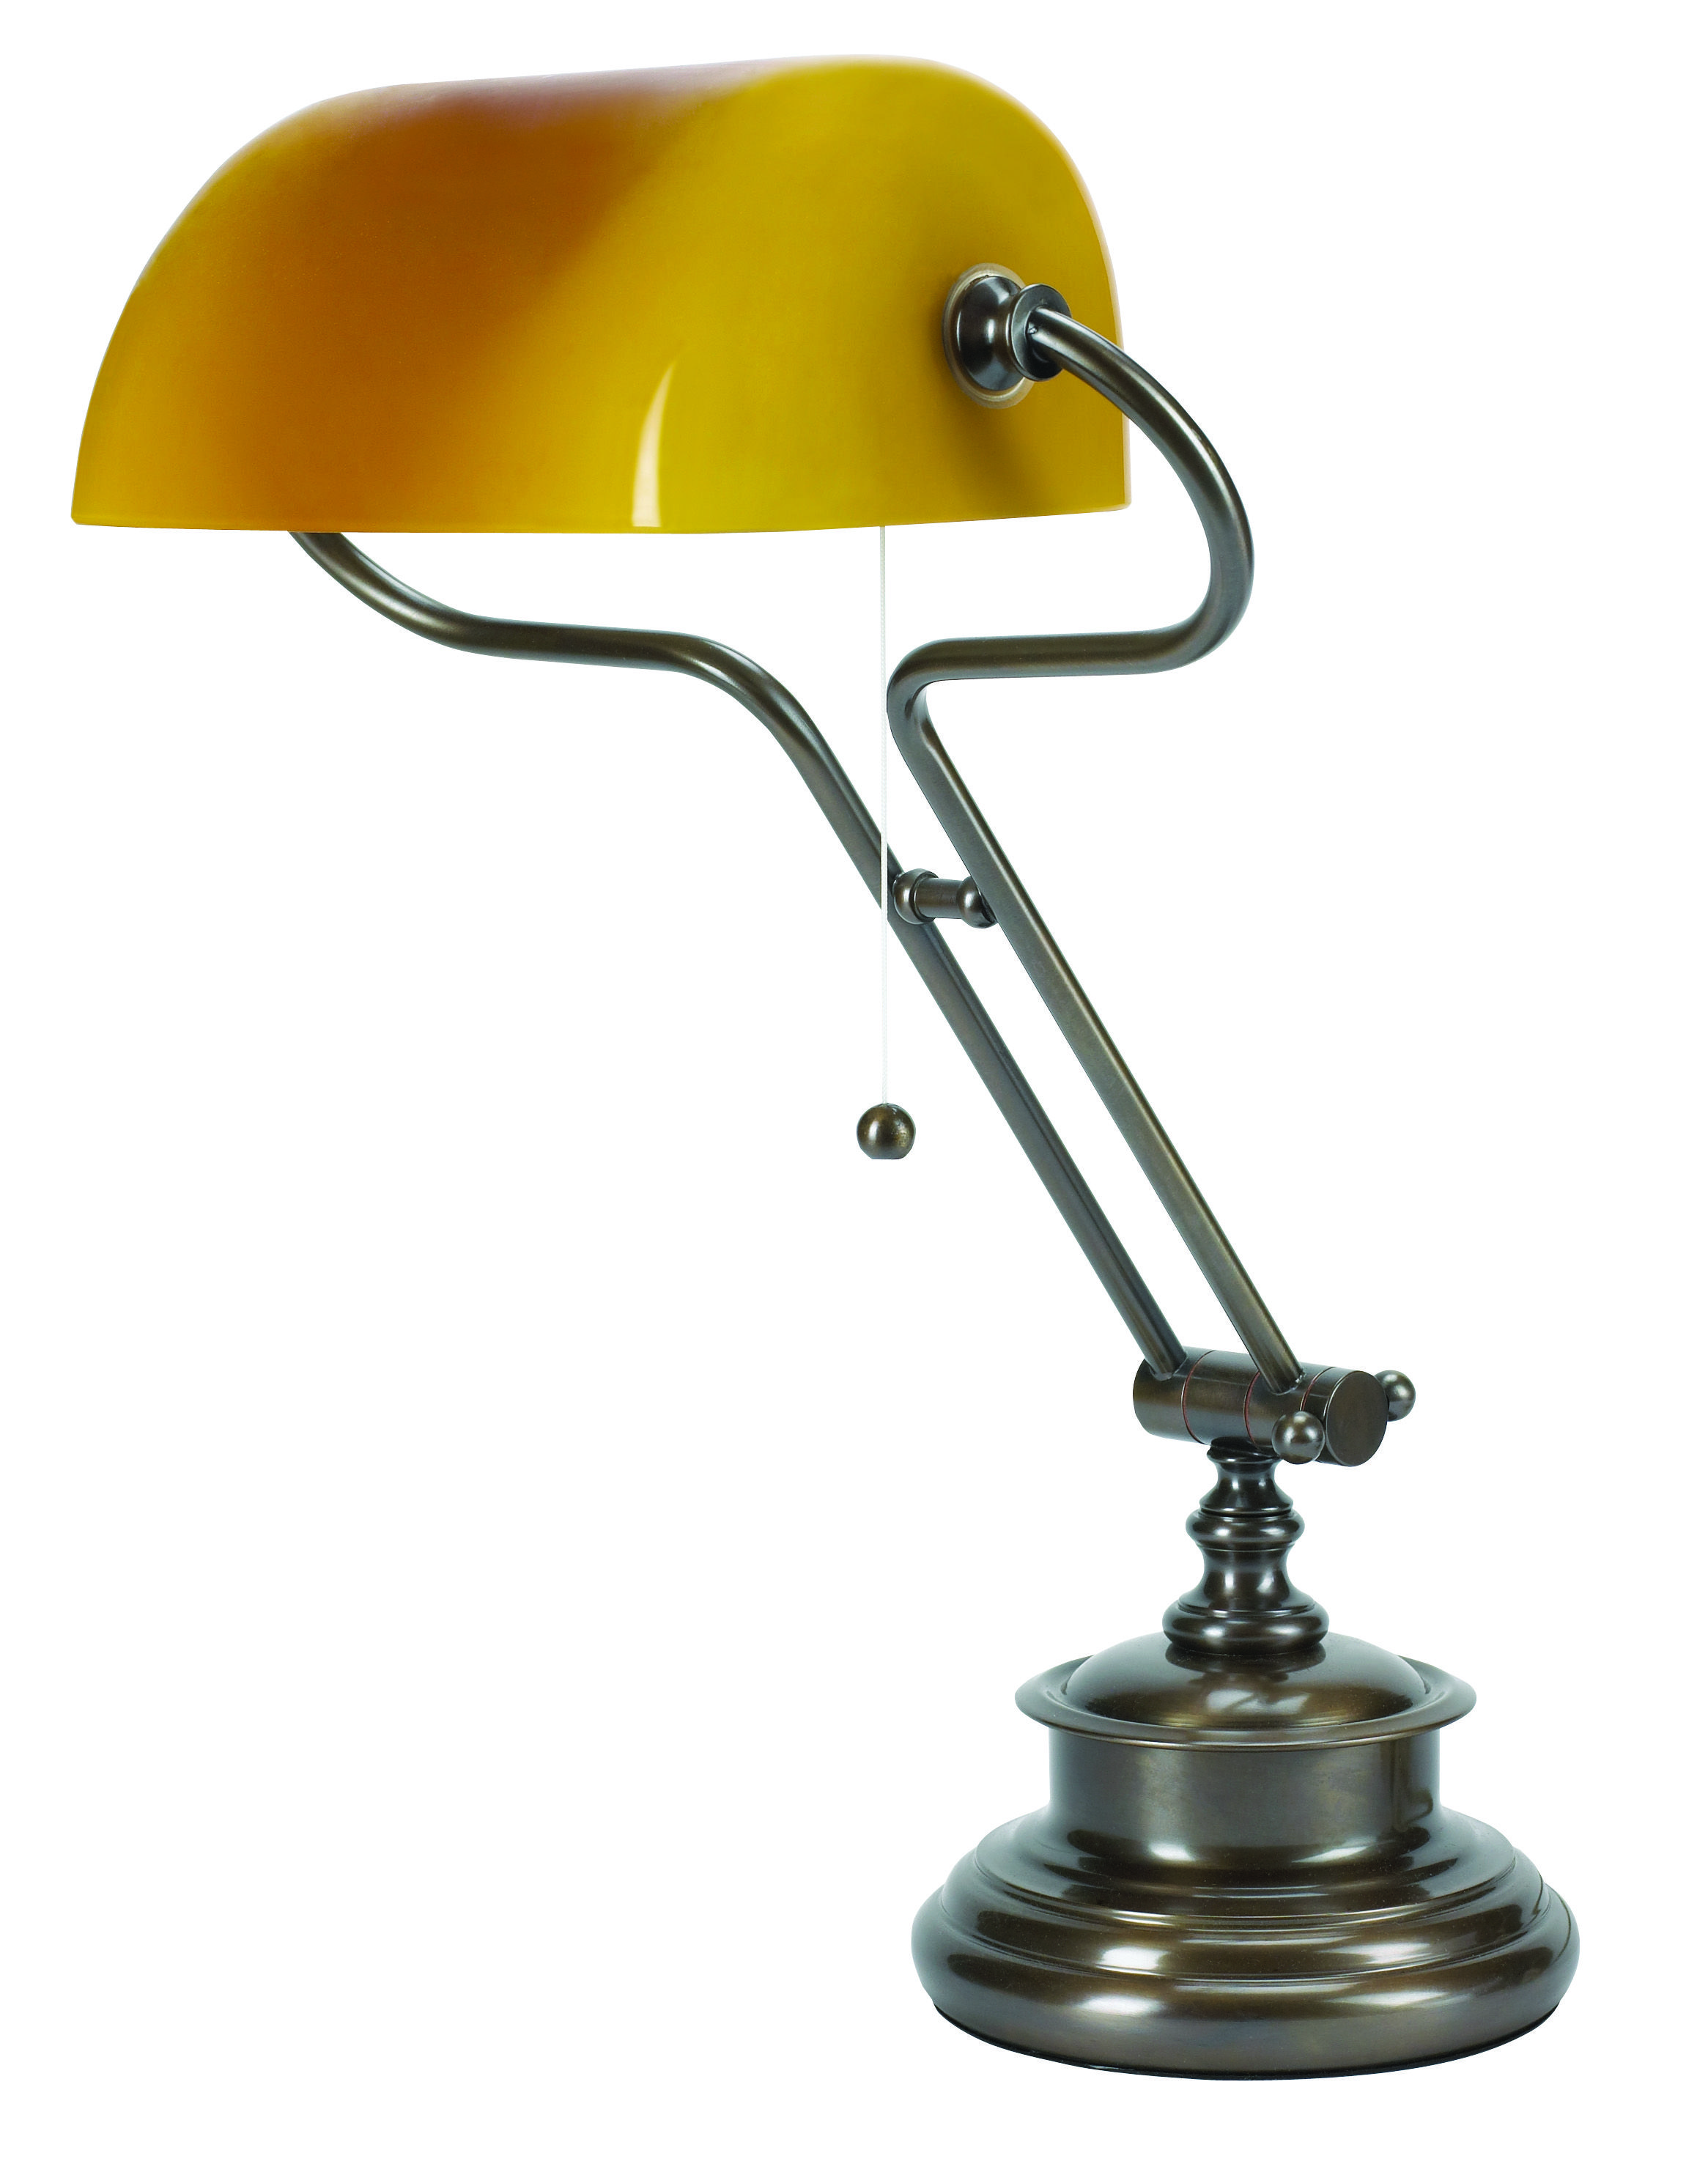 T2 015 Traditional Bankers Lamp With Yellow Shade Shown In A Bronze Finish Lamp Bankers Lamp Desk Lamps